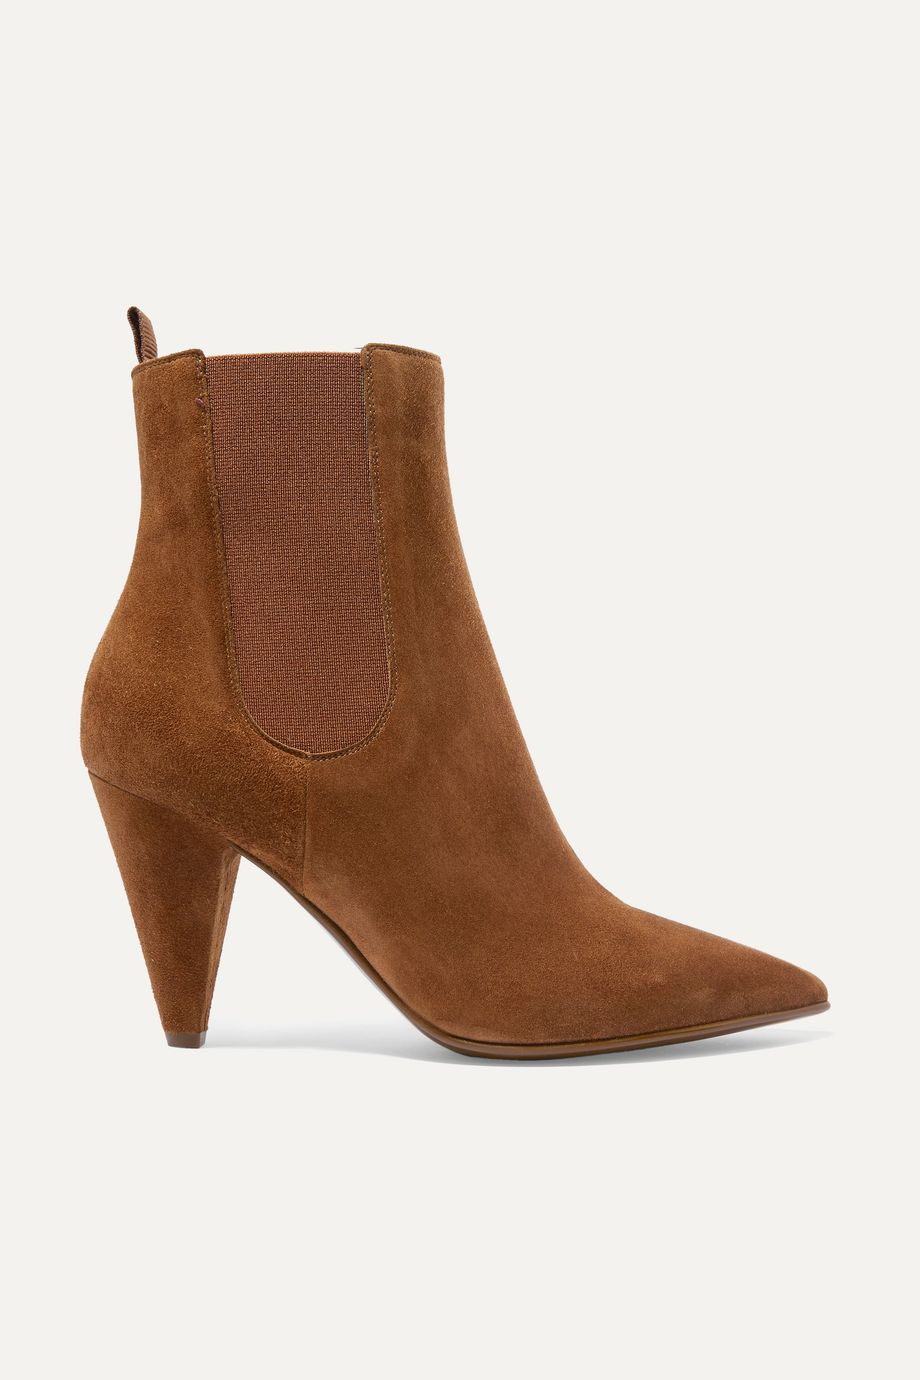 Gianvito Rossi 85 suede Chelsea boots